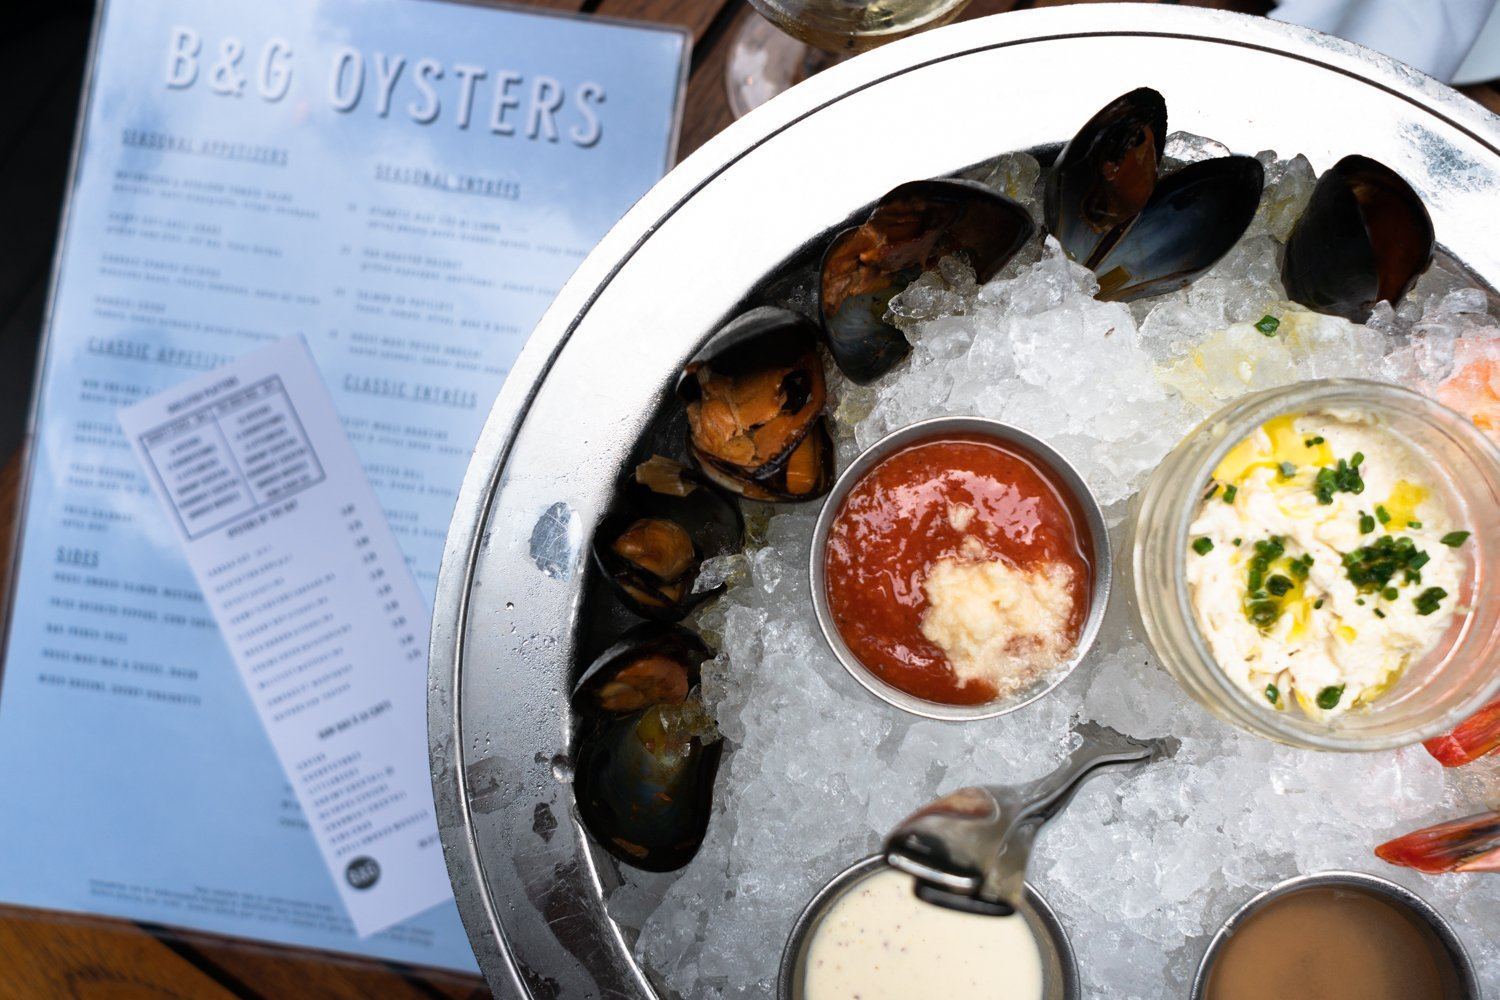 Where to eat: B&G Oysters